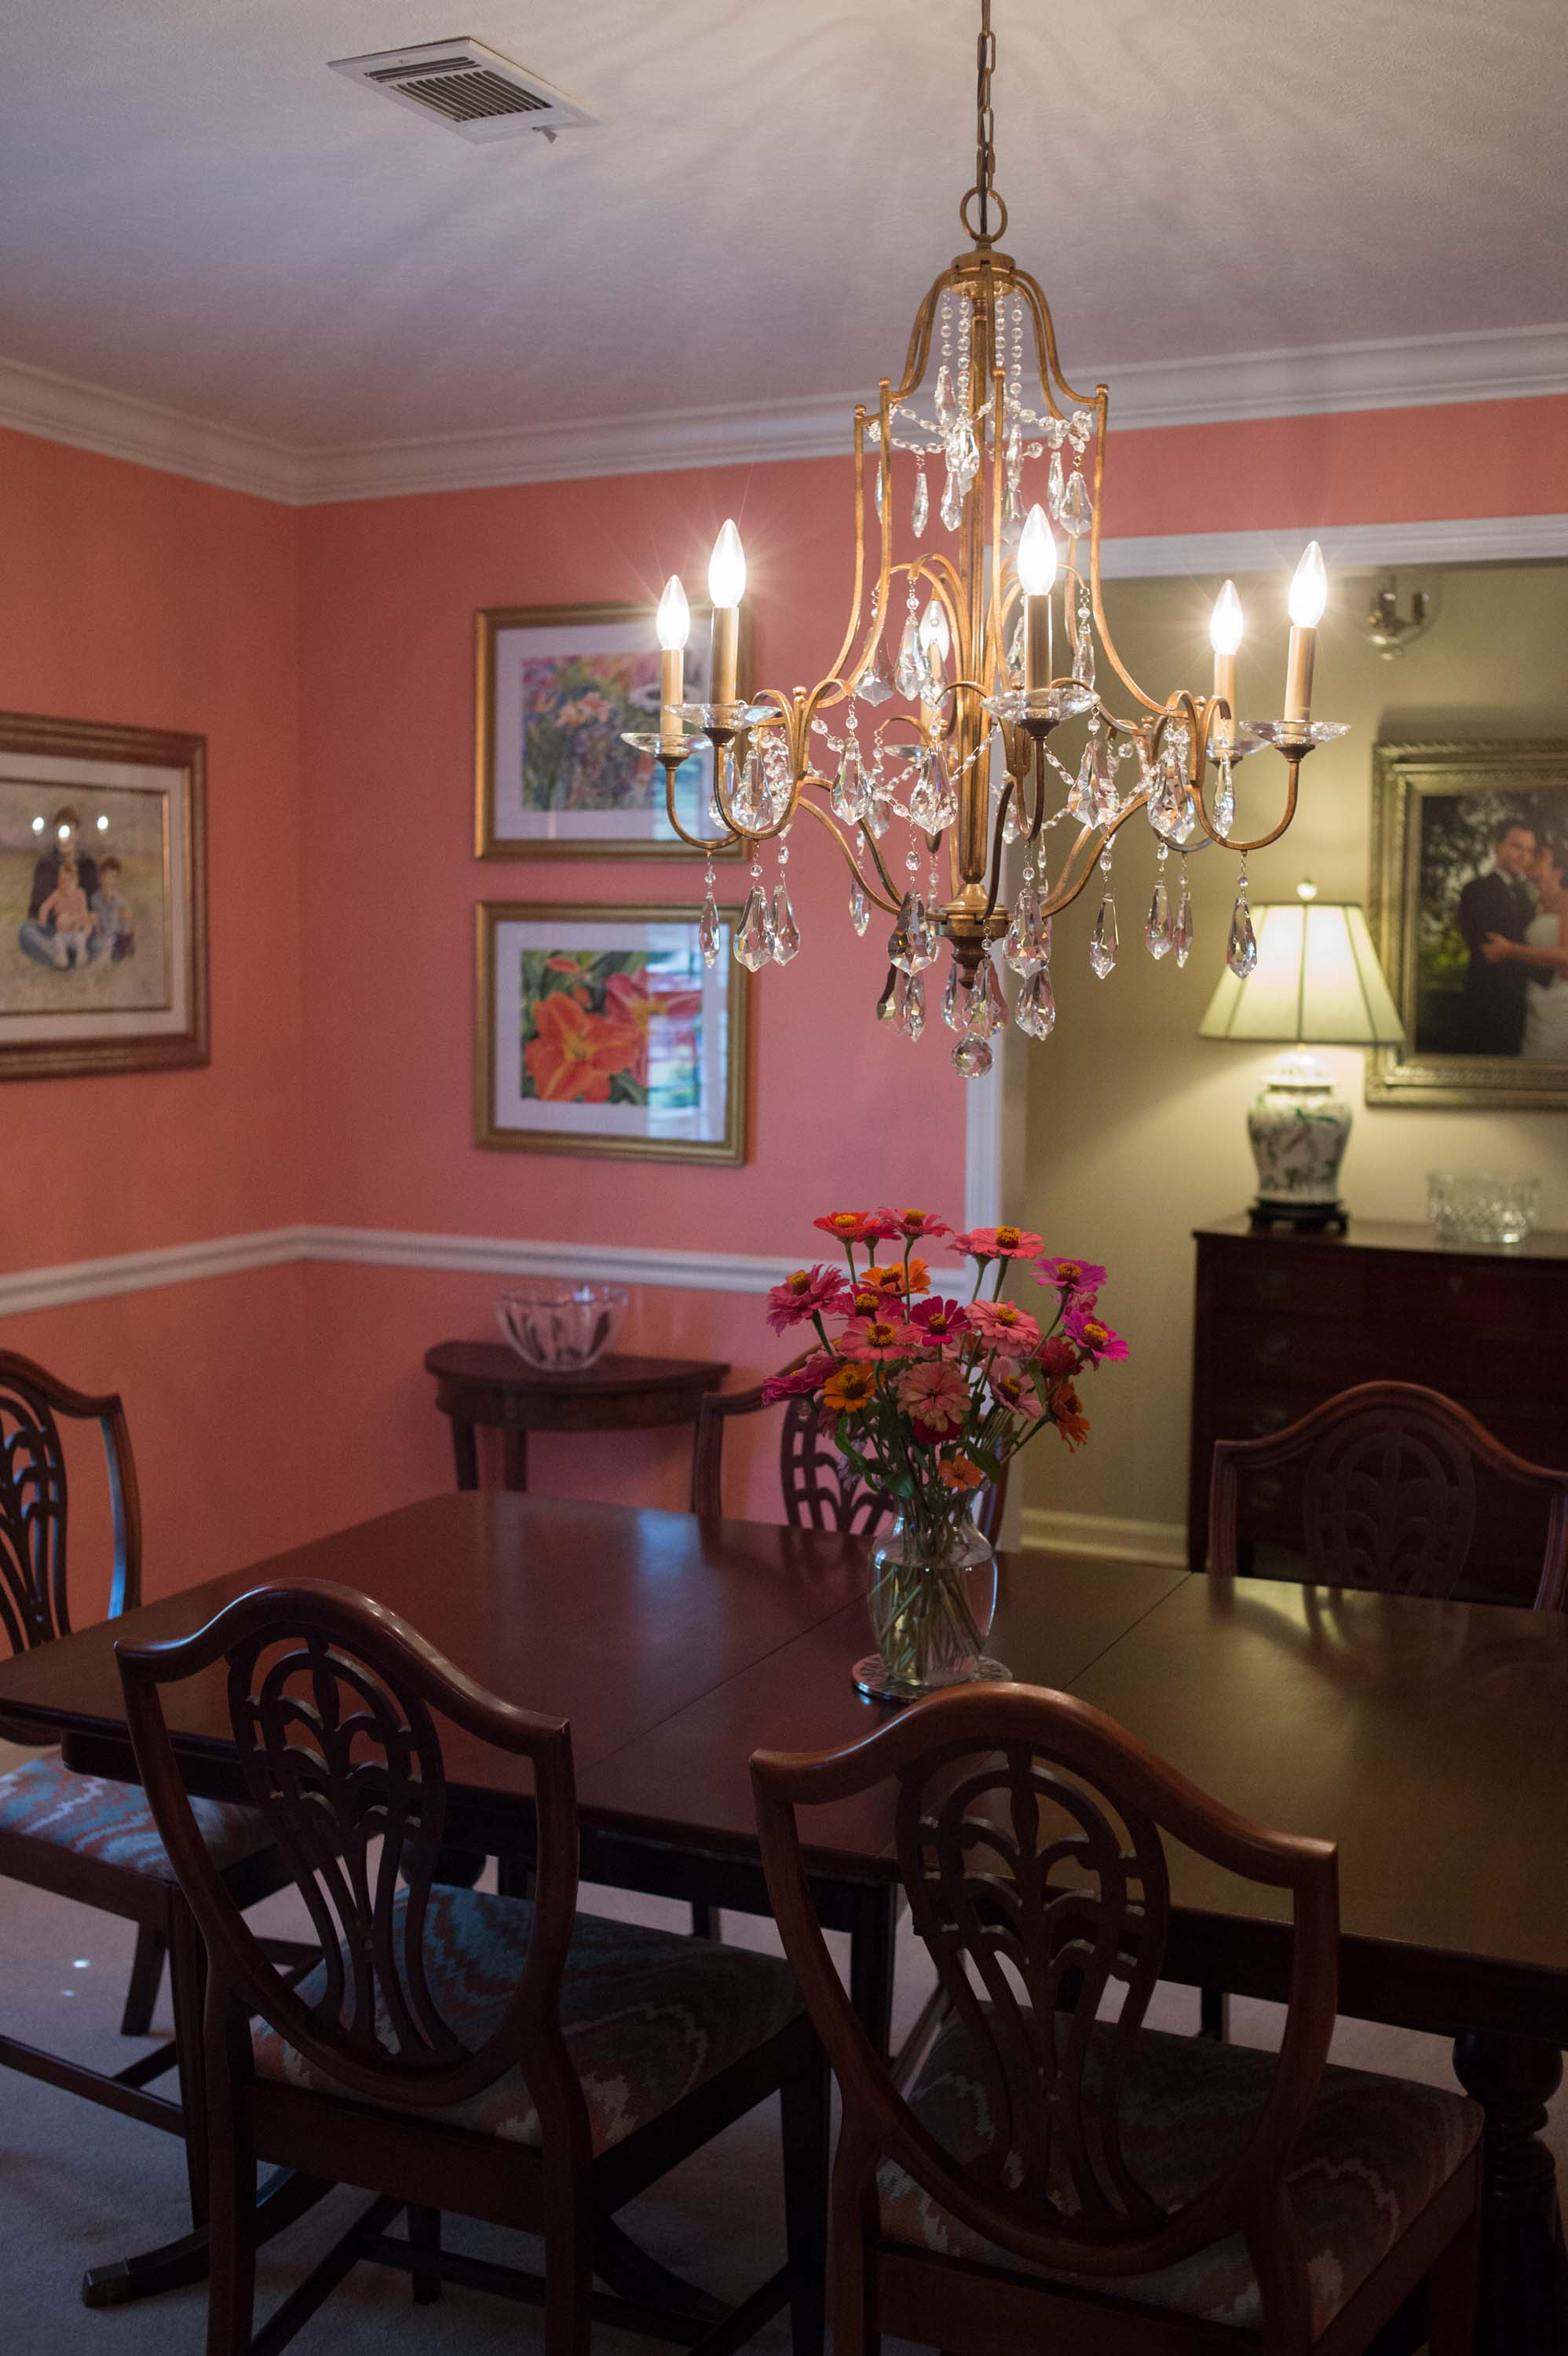 Pink Dining Room with Chandelier, Artwork and Fresh Flowers